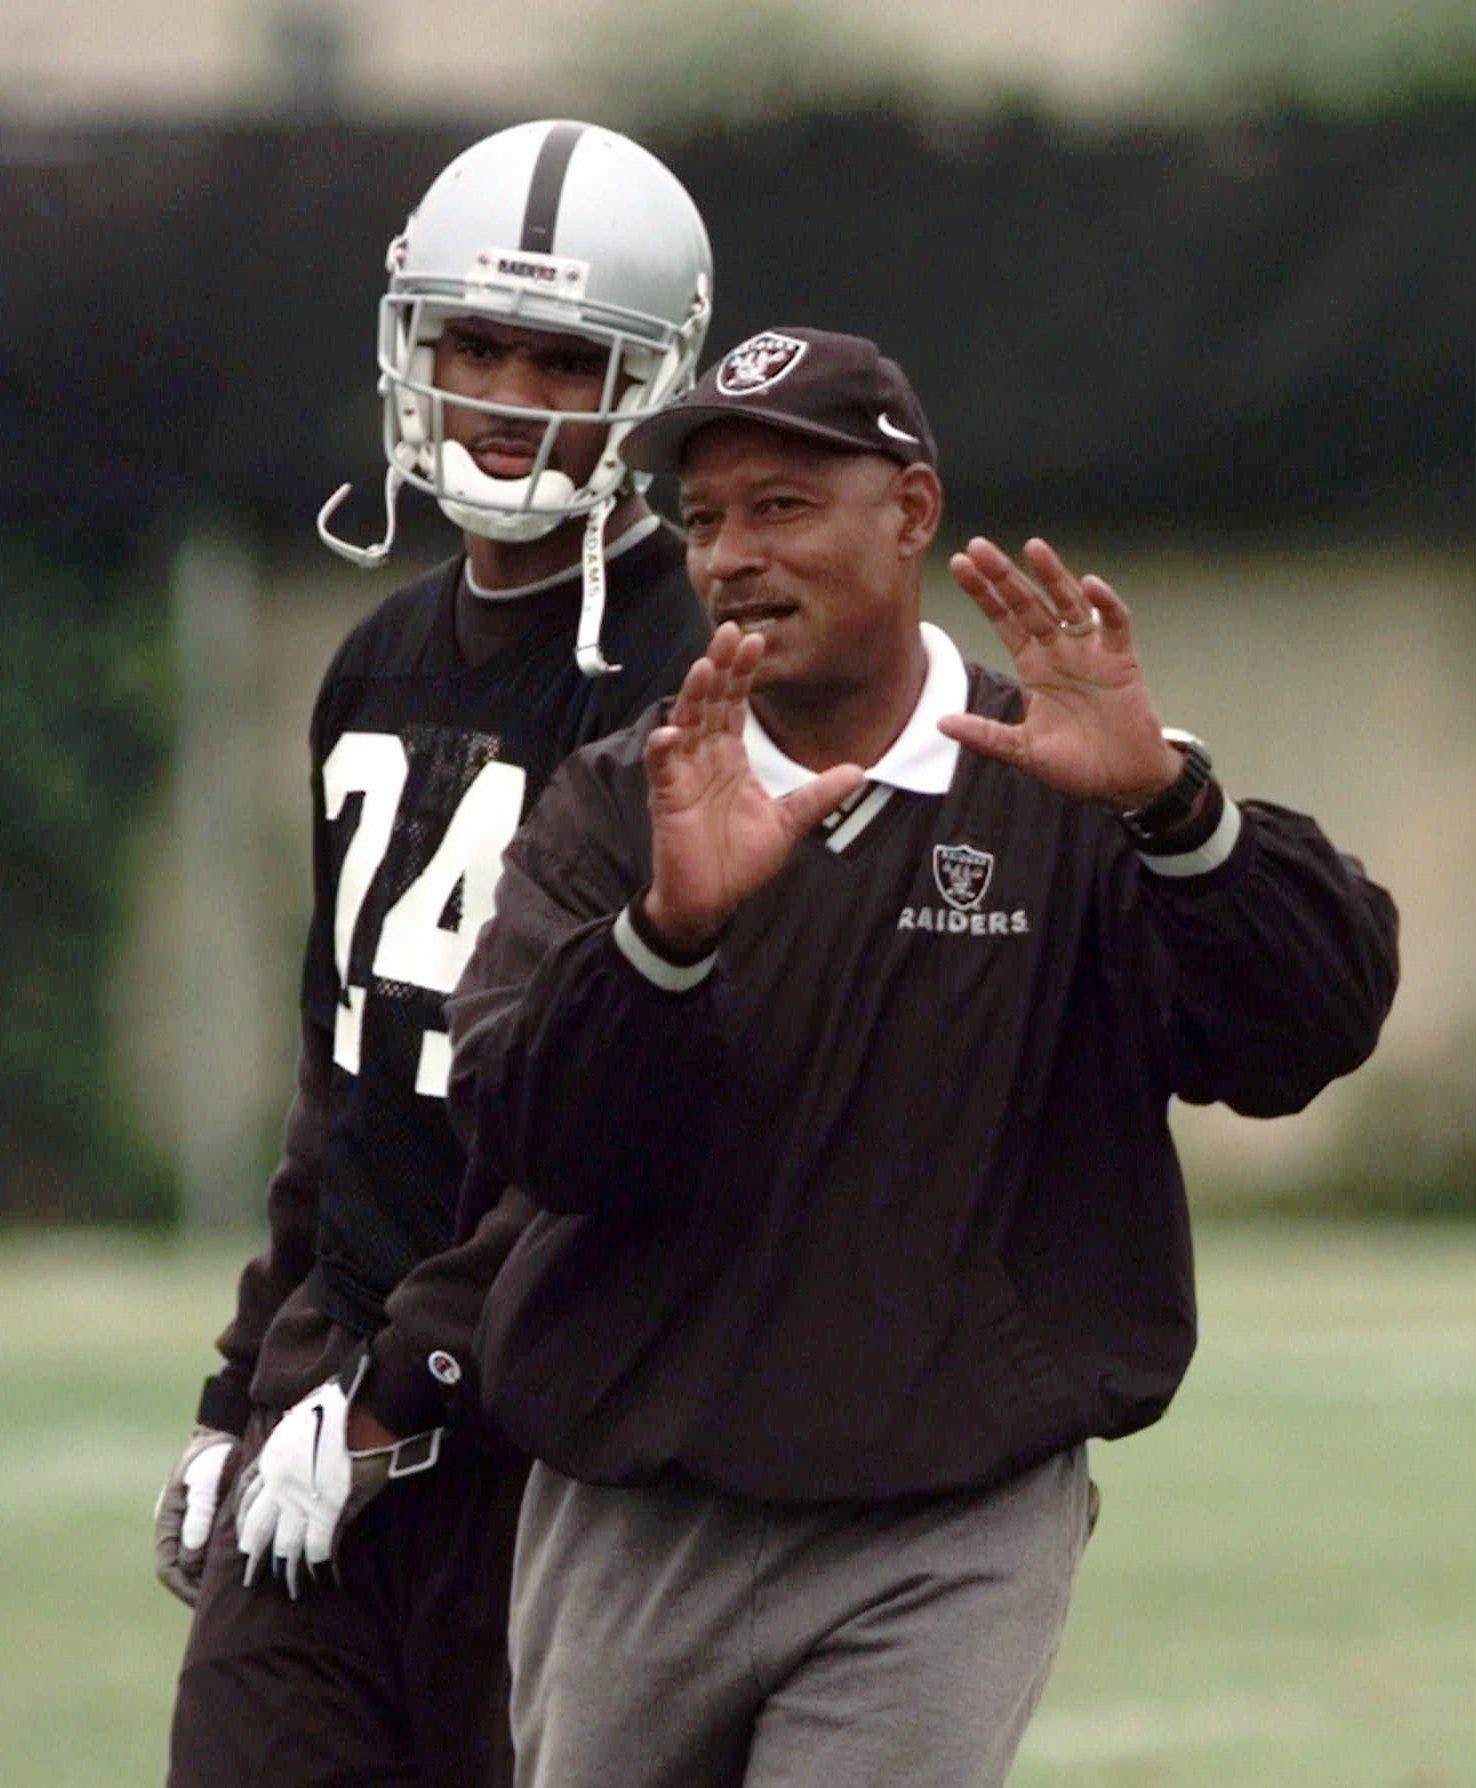 Raiders legend, Hall of Famer Willie Brown dies at 78